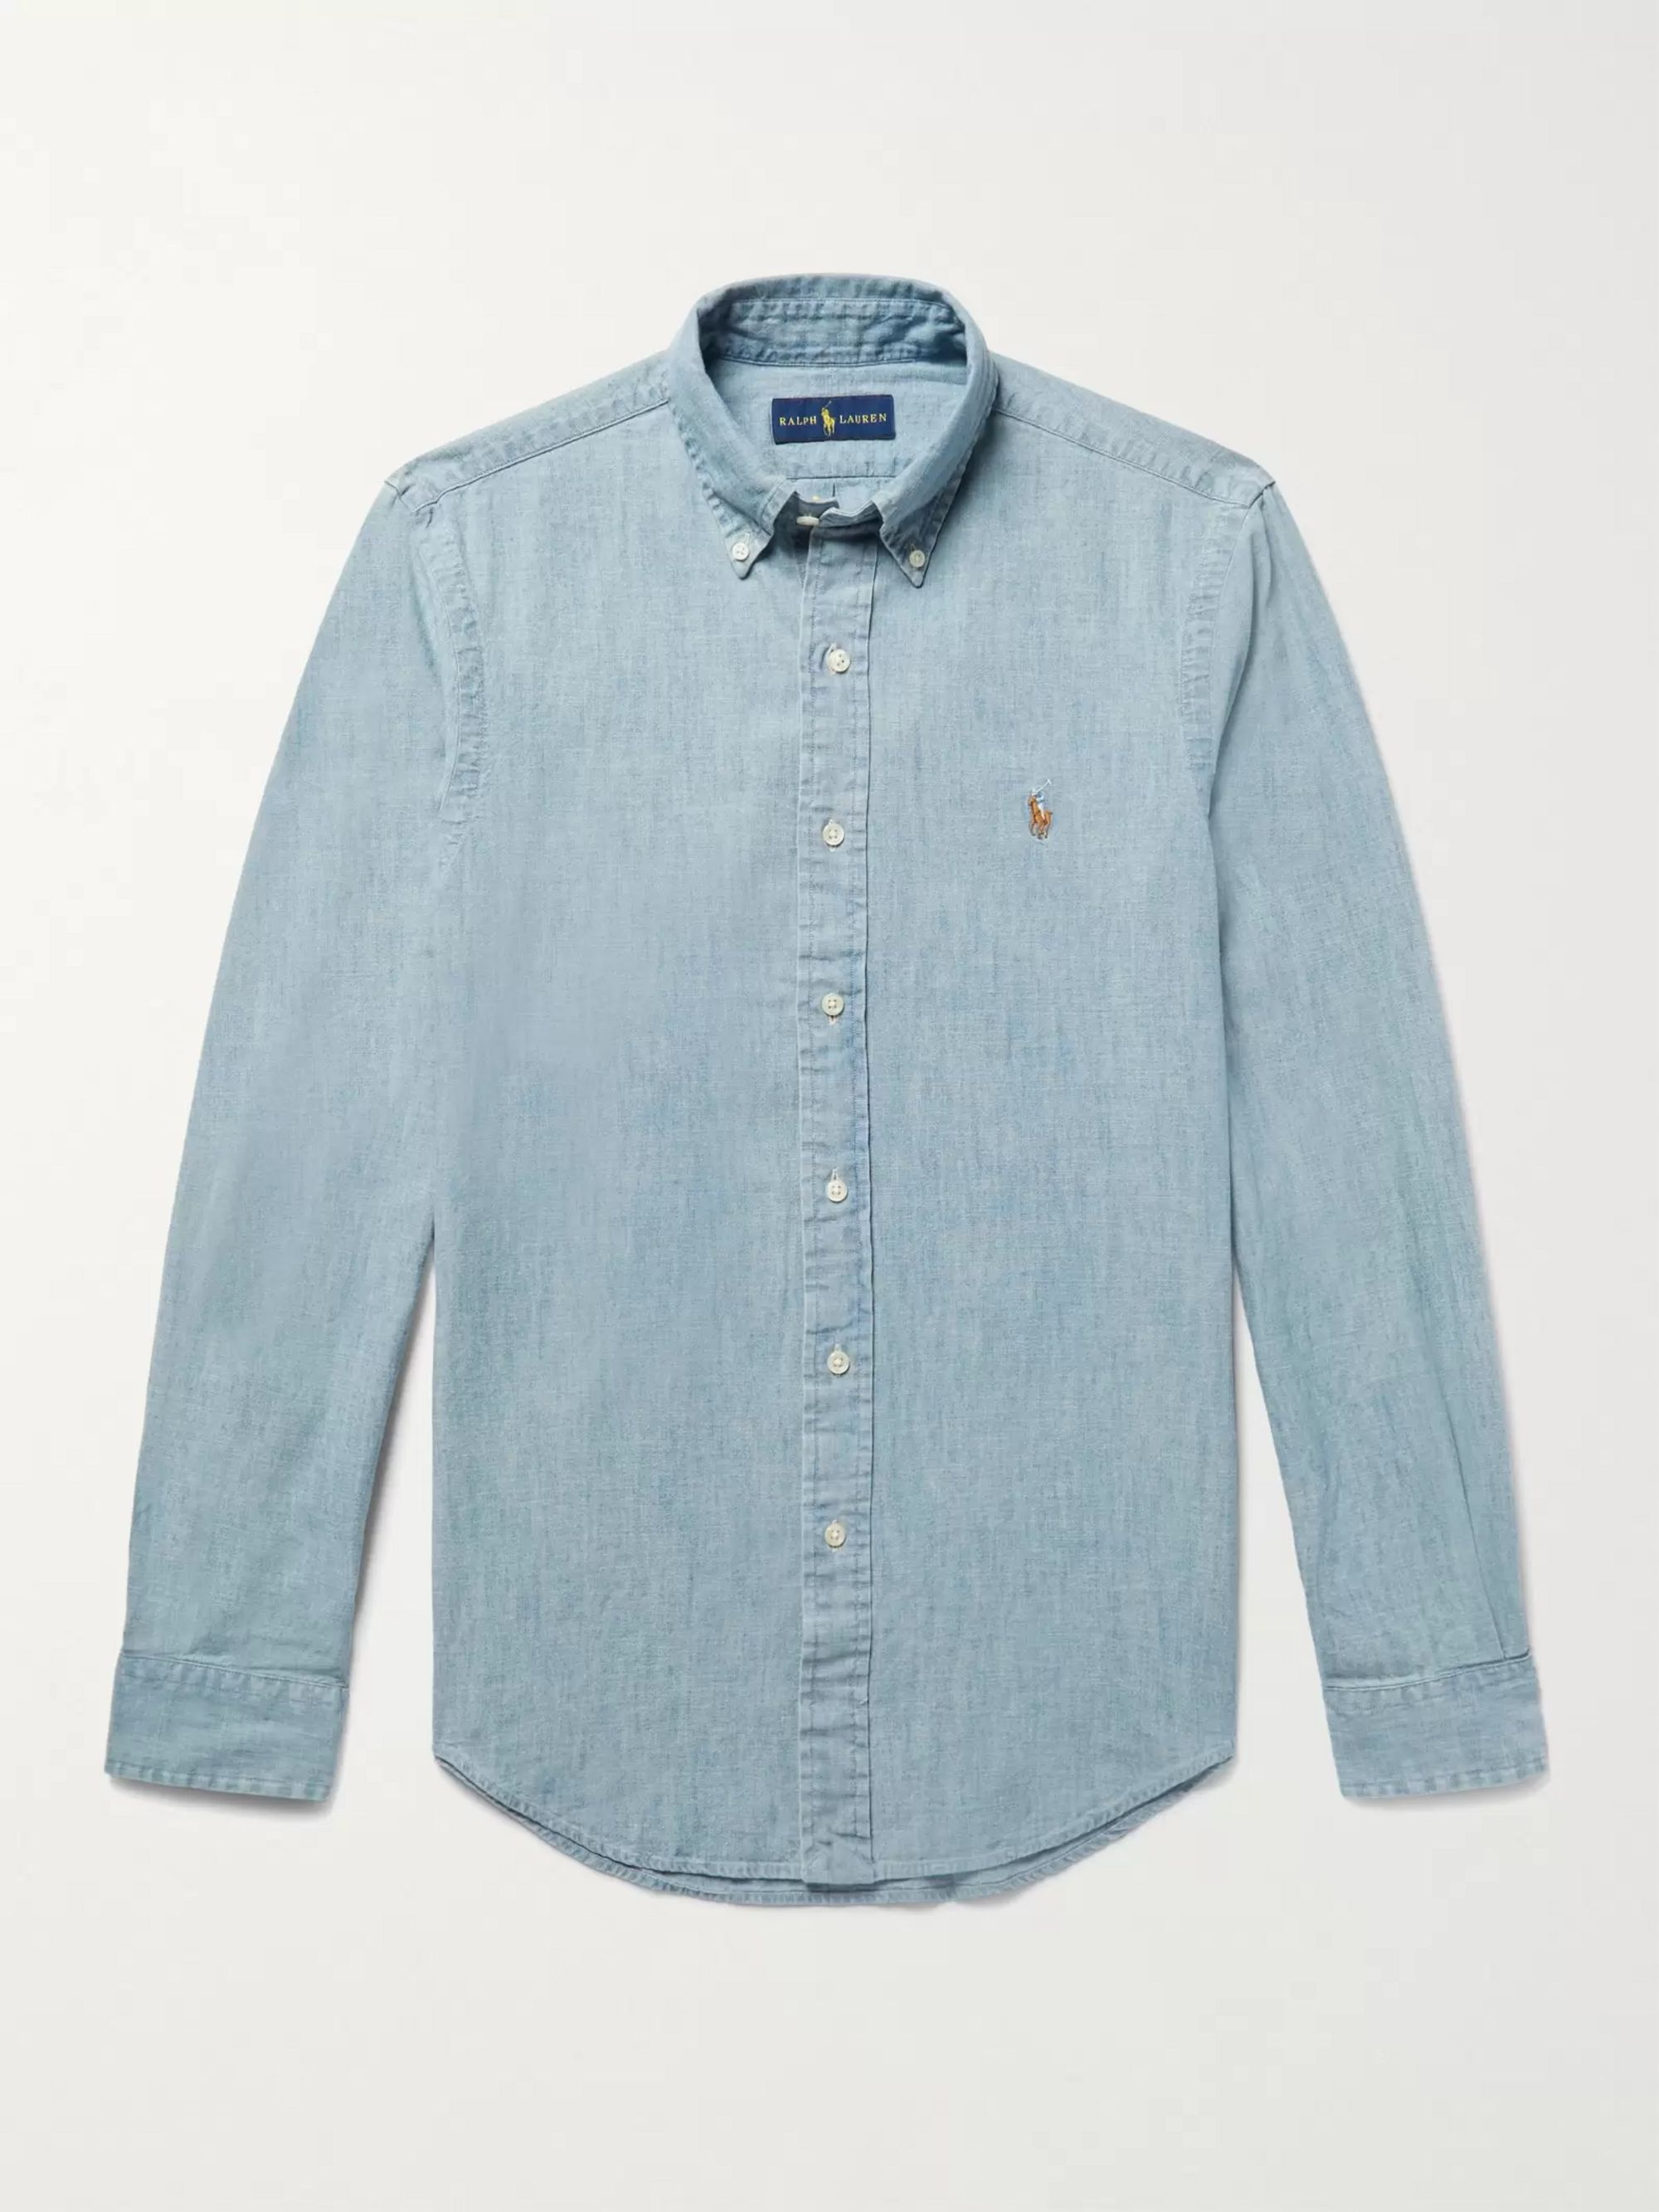 Washed Shirt Chambray Slim Fit Cotton wPkOlXTZiu